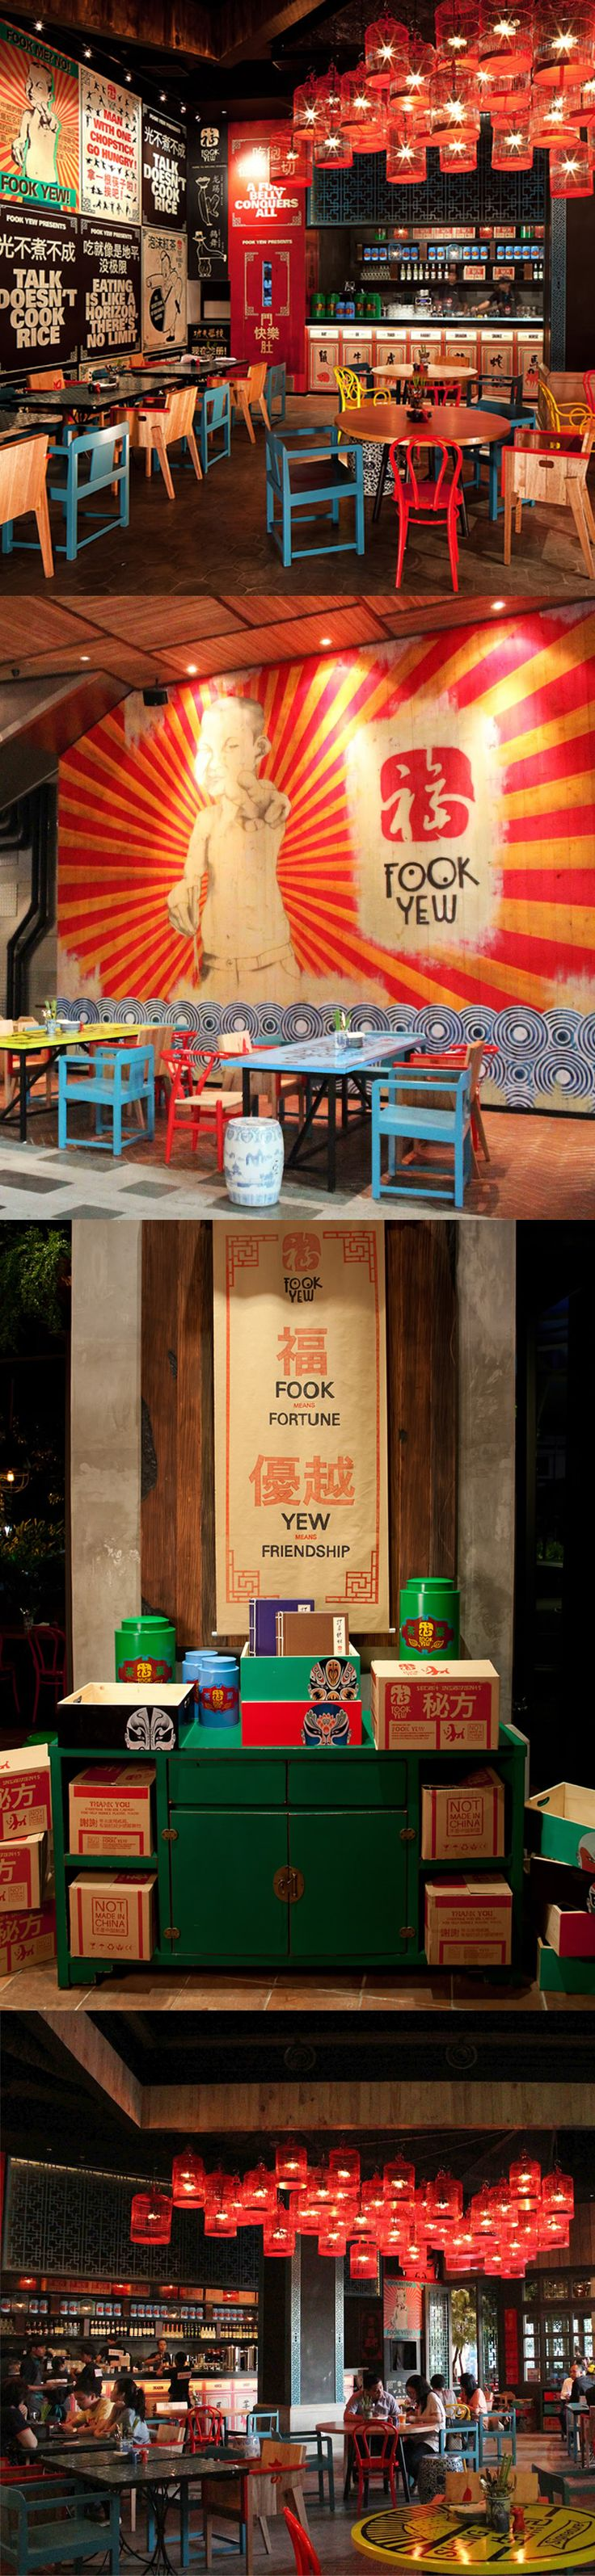 Fook Yew Jakarta Mix-n-match chairs, birdcage chandelier, round tables in middle, rectangular along wall.